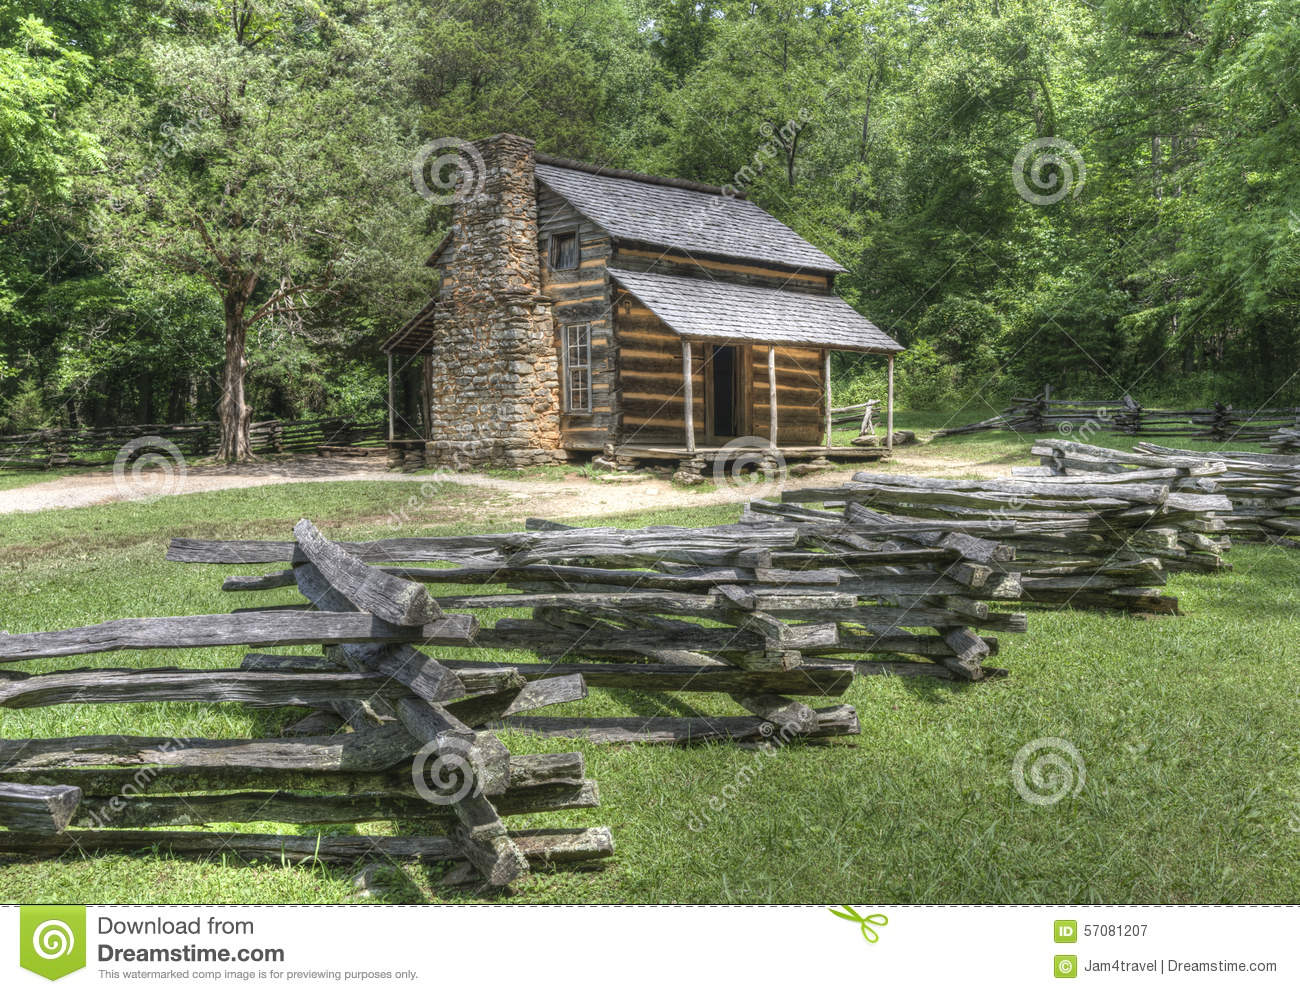 Superb img of John Oliver Log Cabin located in Cades Cove Area of the Great Smoky  with #7B8744 color and 1300x994 pixels